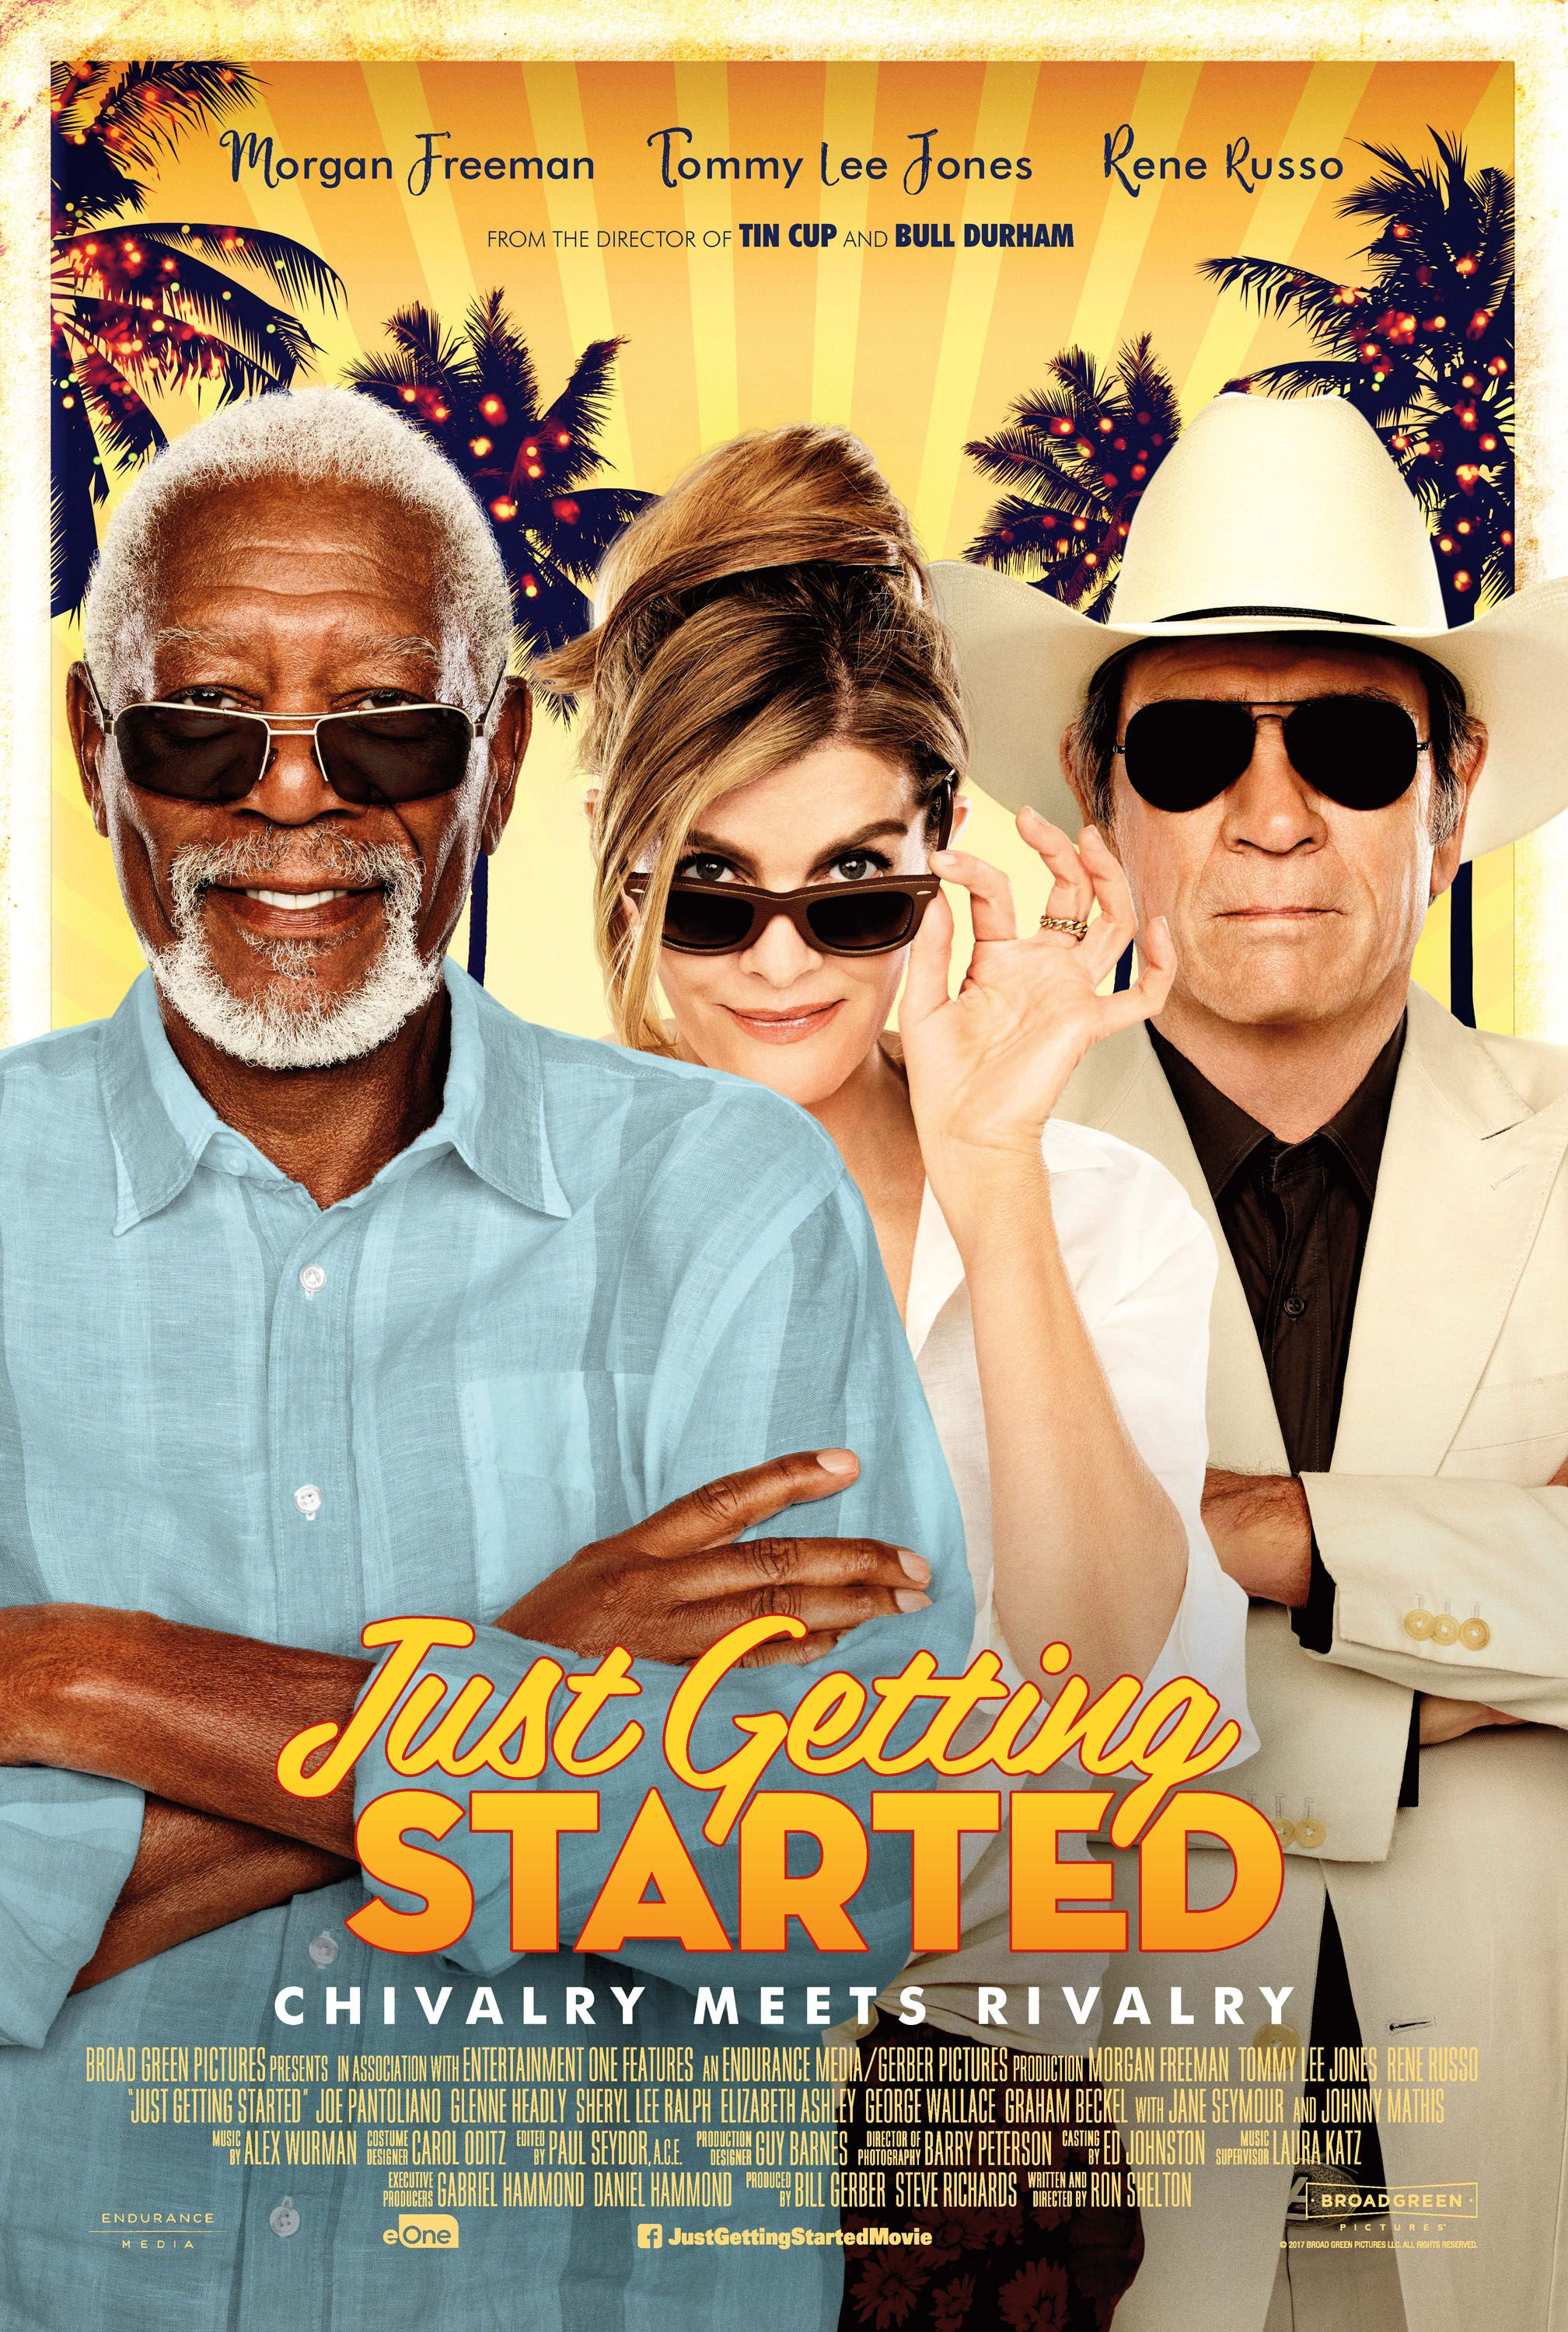 morgan freeman on just getting started & tommy lee jones | collider